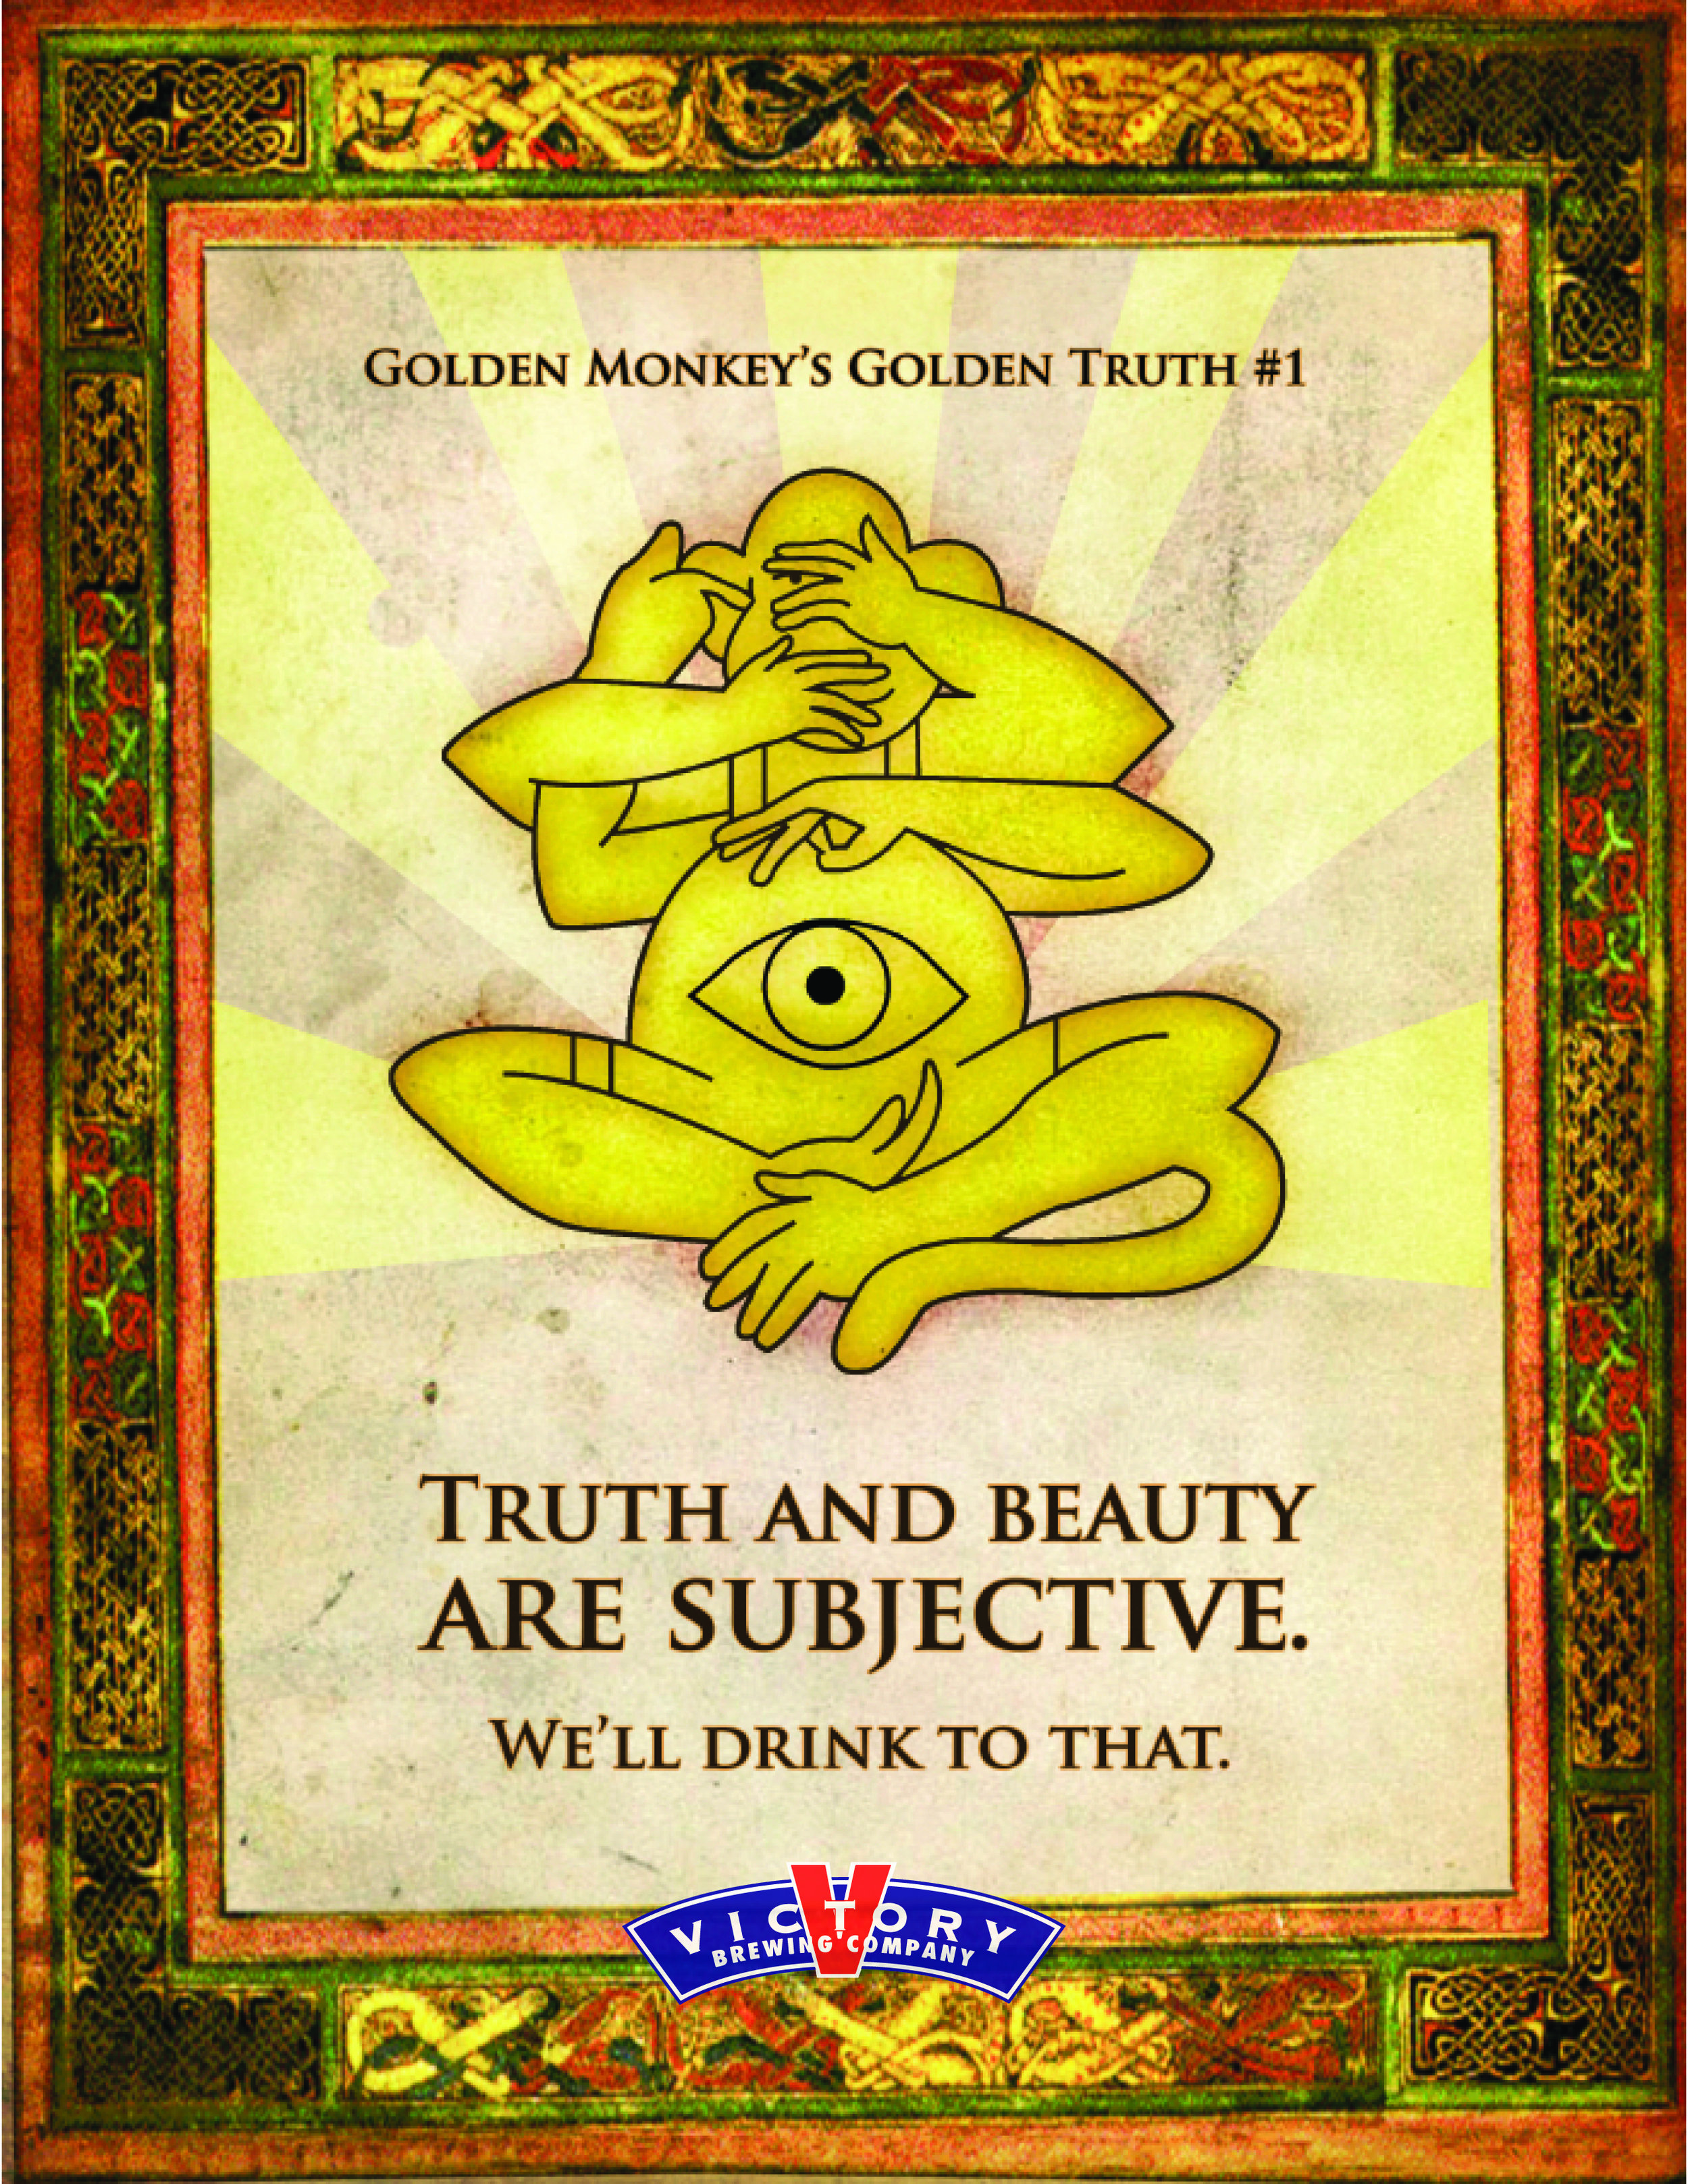 Golden Monkey.jpg